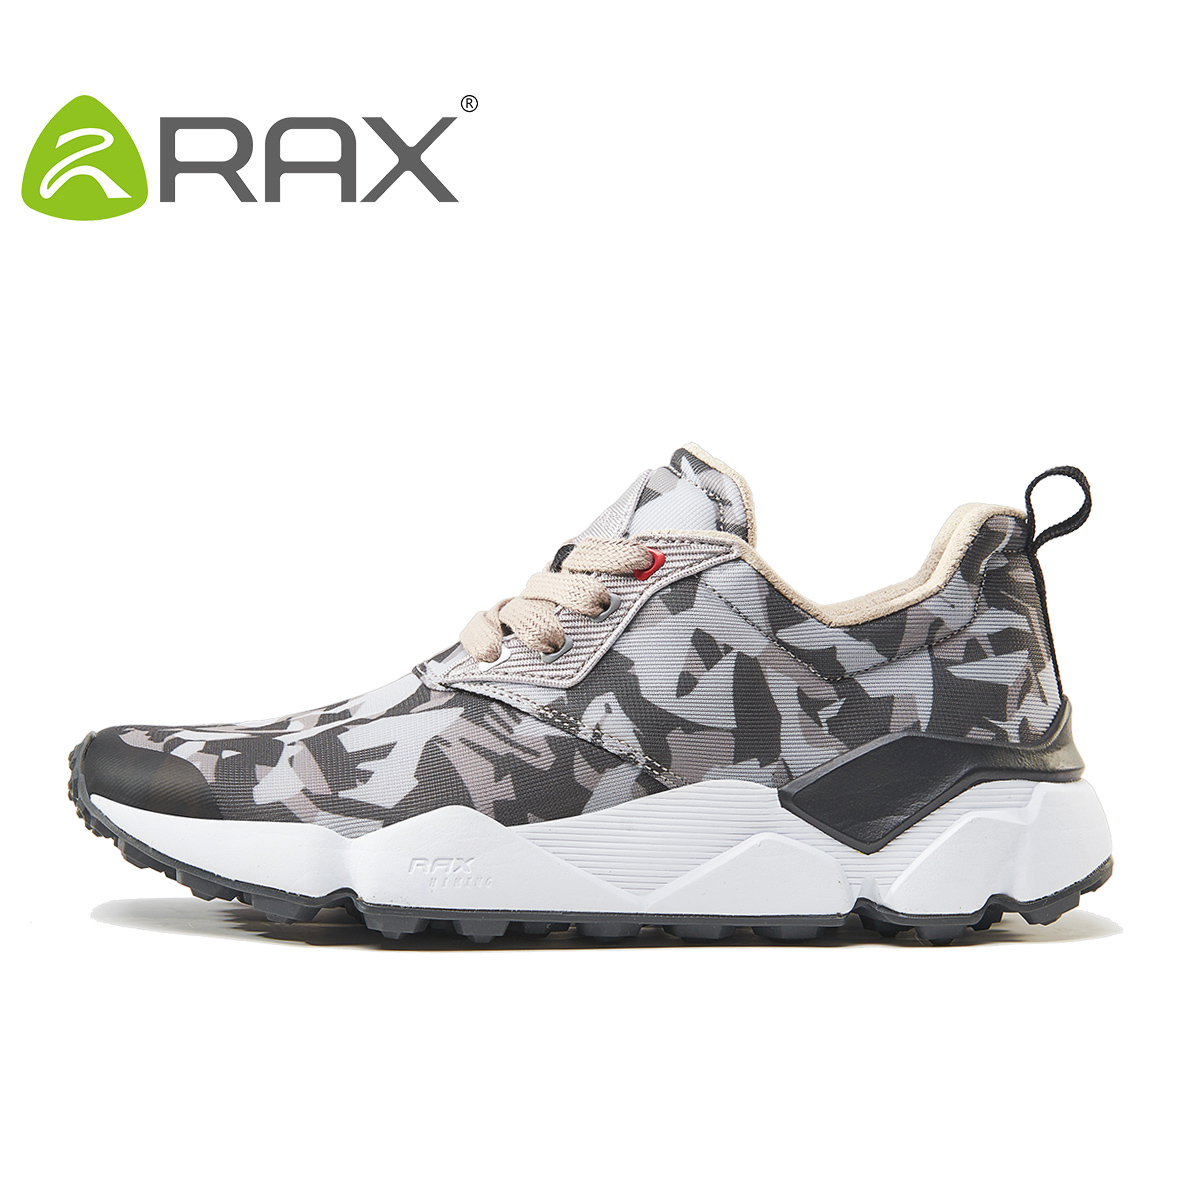 RAX New 2017 womem Running Shoes Outdoor Men Sport Sneakers Winter Women Breathable Athletic Shoes Running Trainers Man Women peak sport men outdoor bas basketball shoes medium cut breathable comfortable revolve tech sneakers athletic training boots